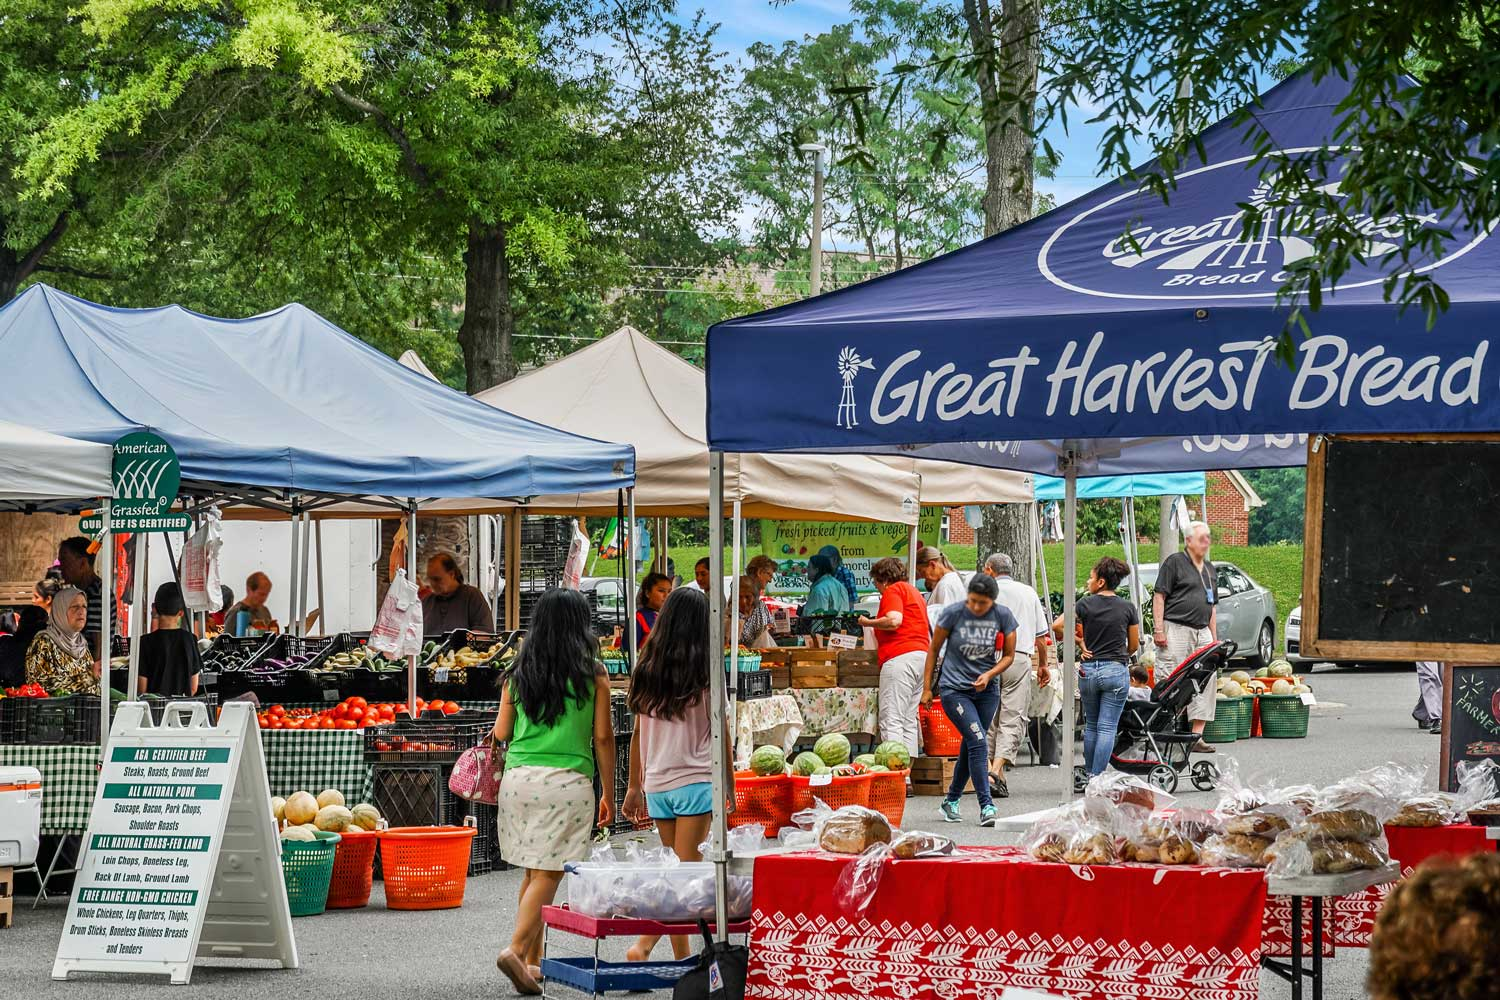 Annandale Farmers' Market is 5 minutes from Barcroft Plaza Apartments in Falls Church, VA